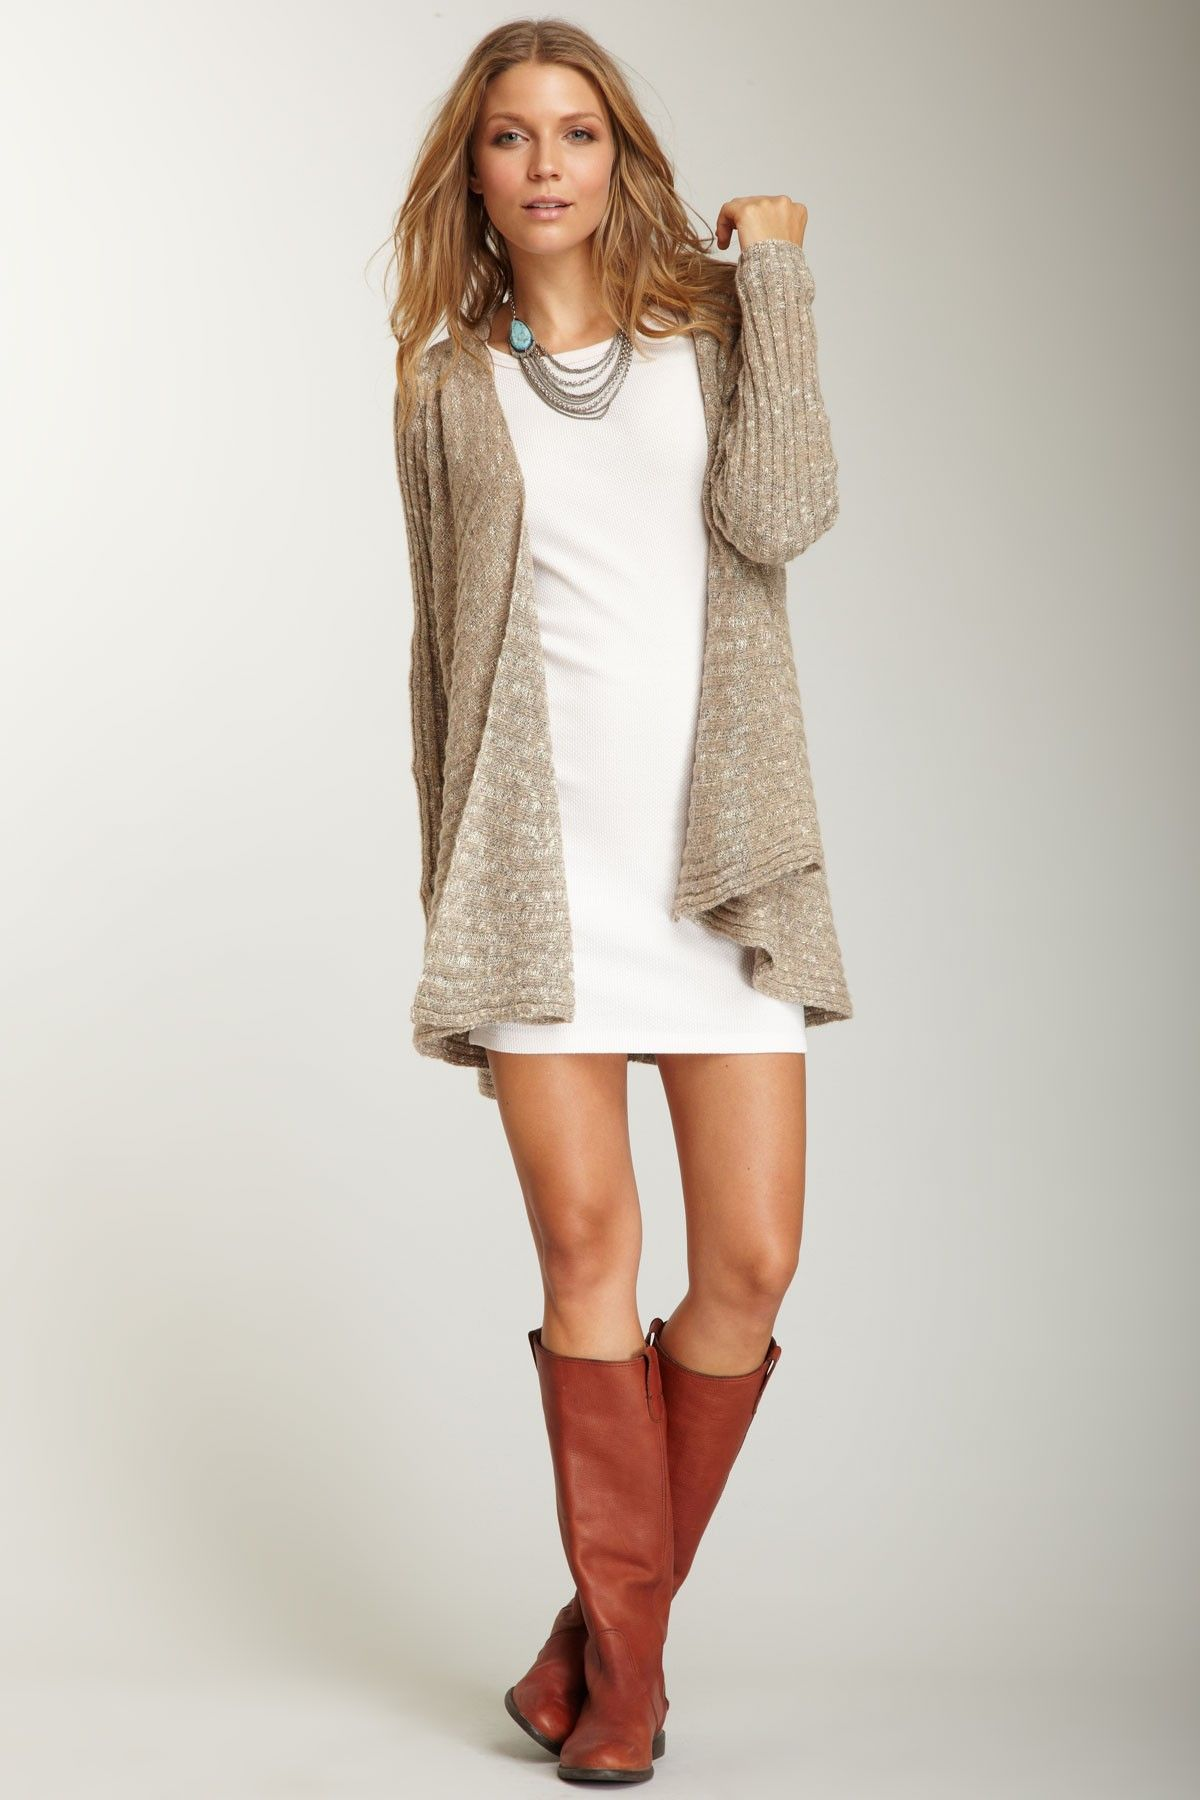 Oversized cardigan, dress, and boots...perfect for fall.